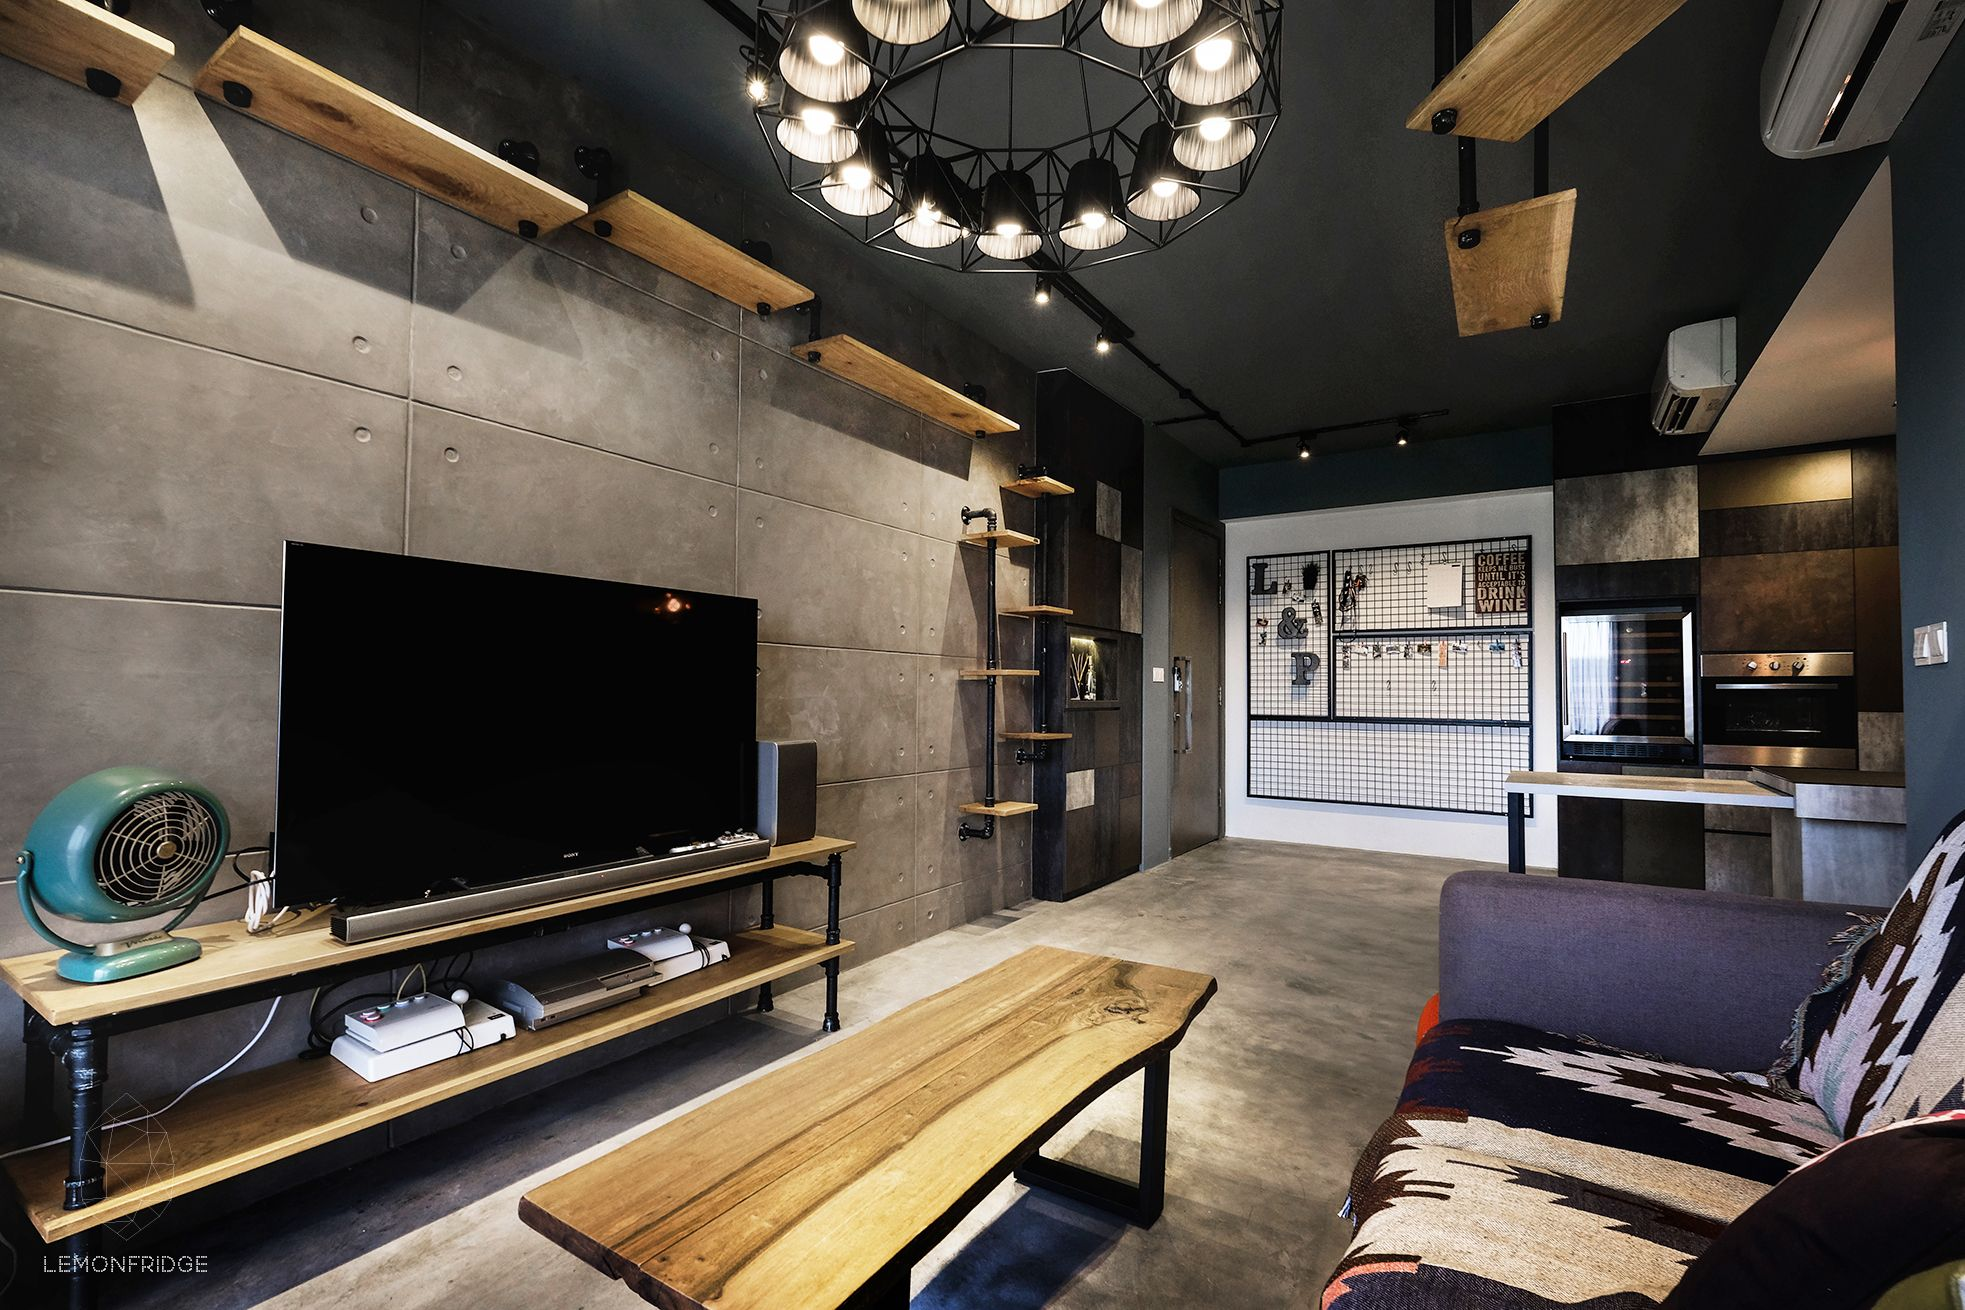 Ando tadao TV feature wall, cement screed flooring ...